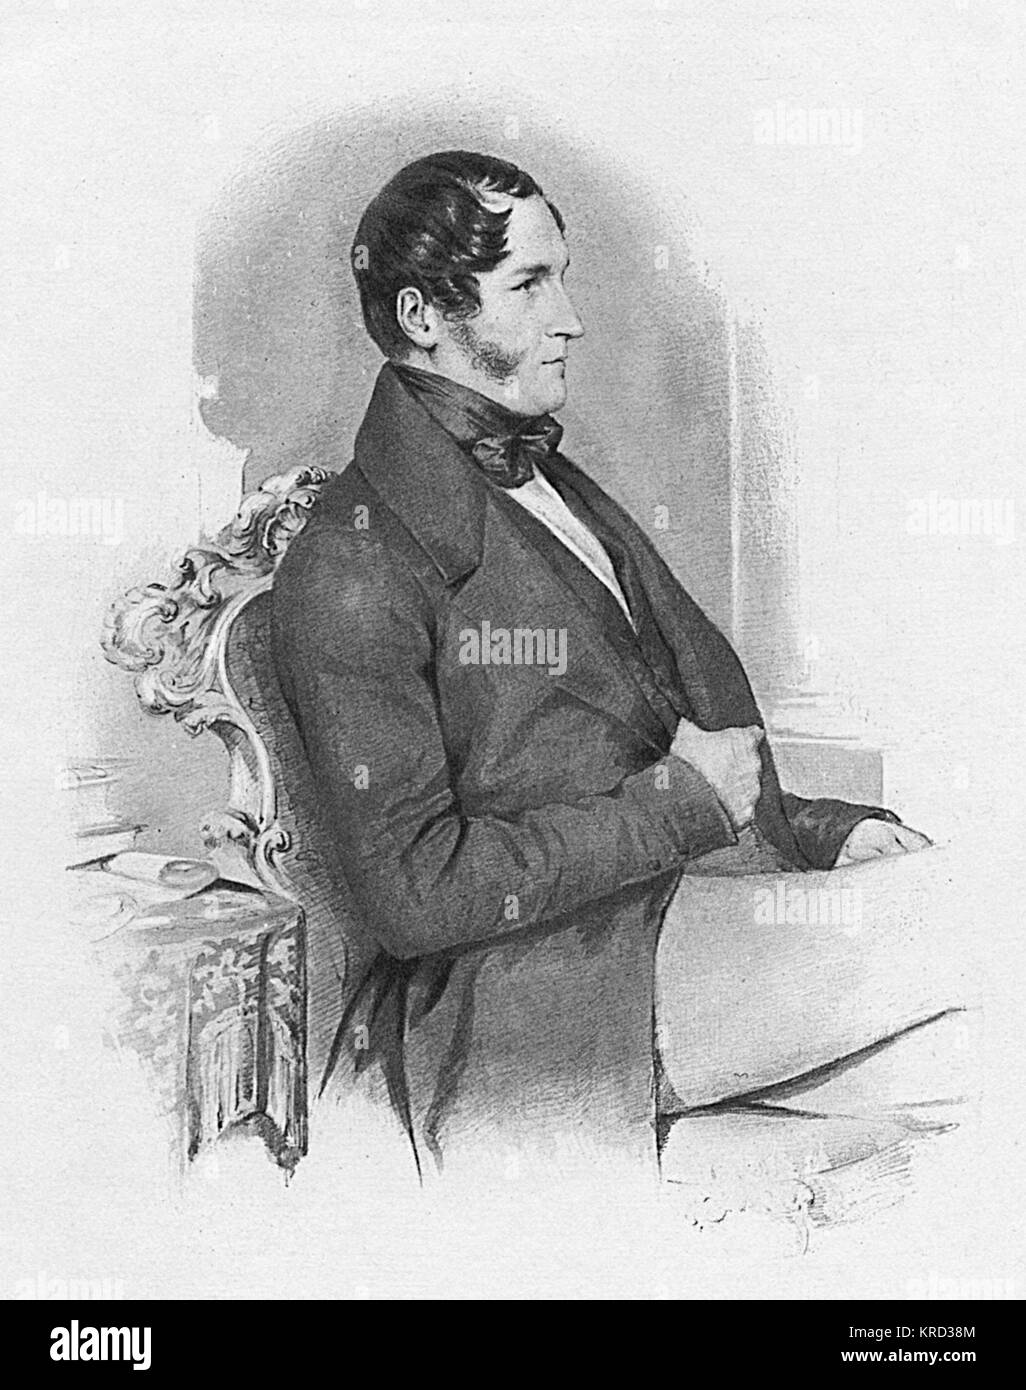 Leopold I, King of the Belgians (1790-1865), King from 1831.  Uncle of Queen Victoria.       Date: 1841 - Stock Image